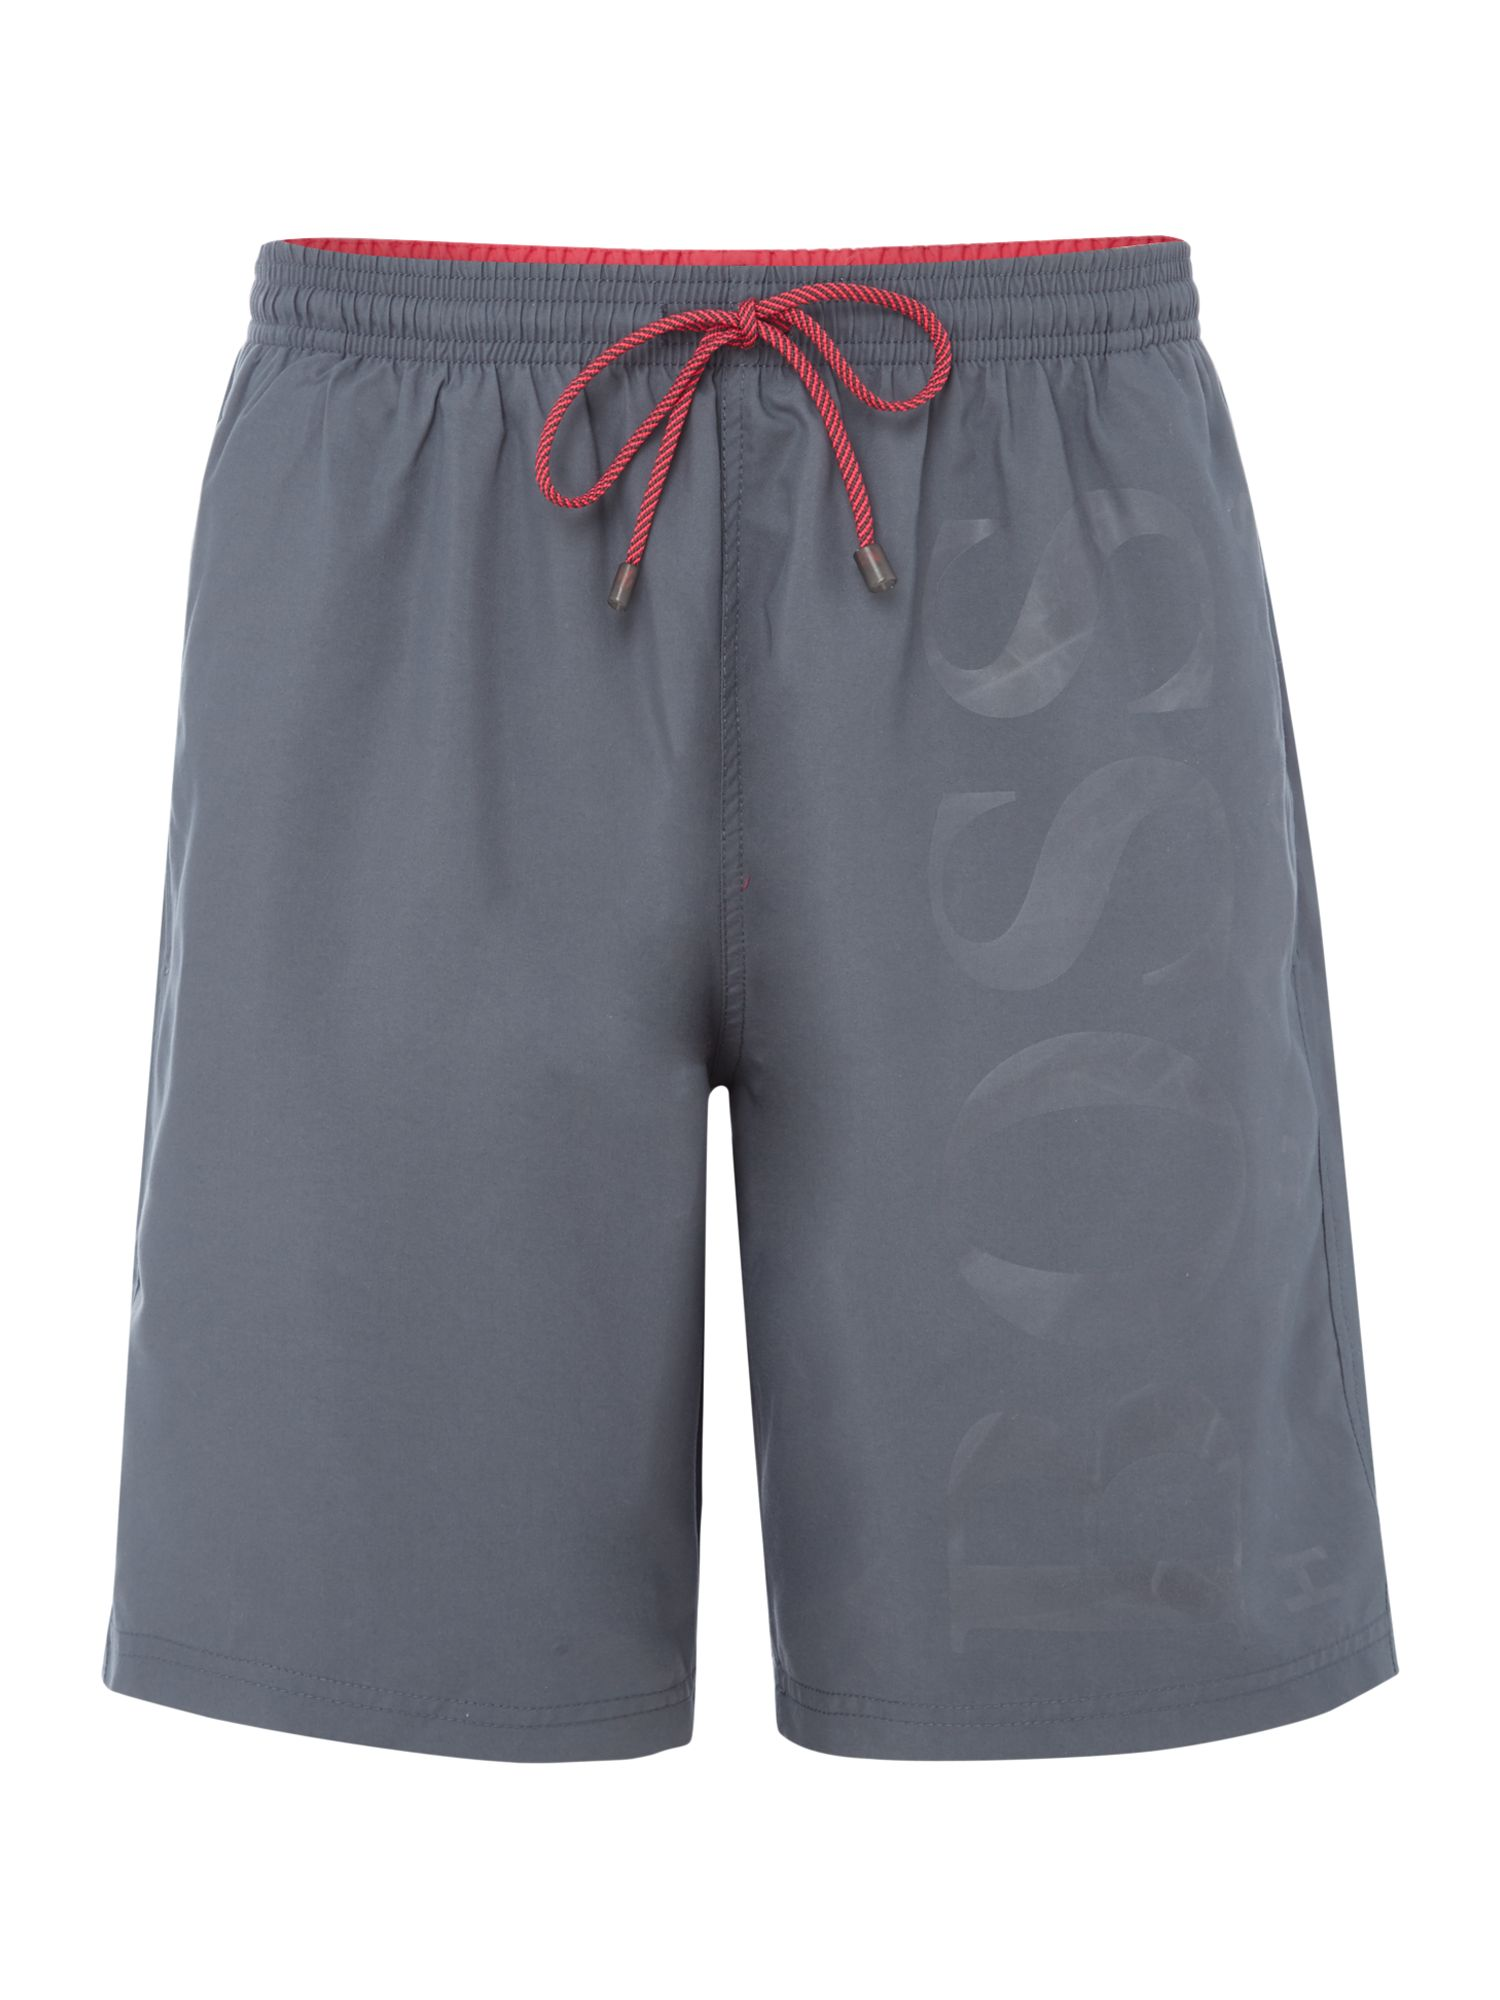 Men's Hugo Boss Orca Logo Shorts, Grey